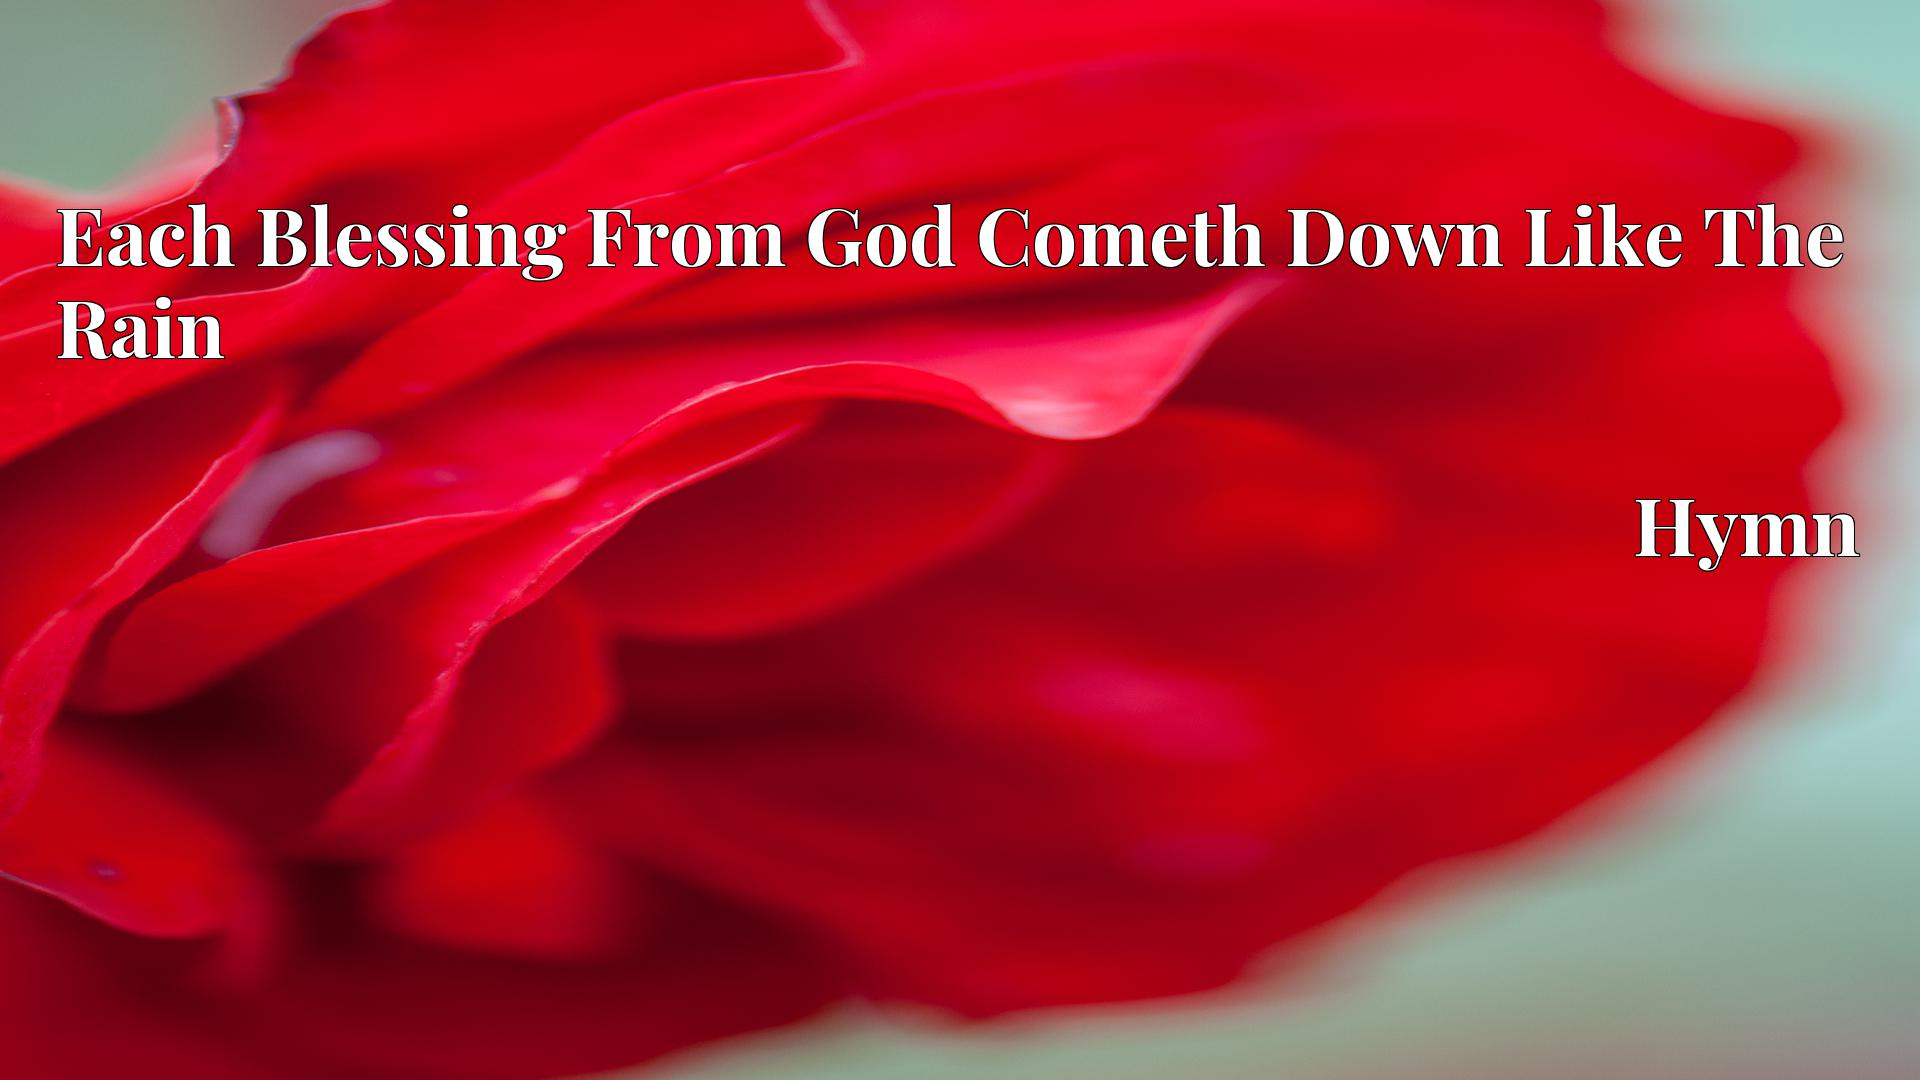 Each Blessing From God Cometh Down Like The Rain - Hymn